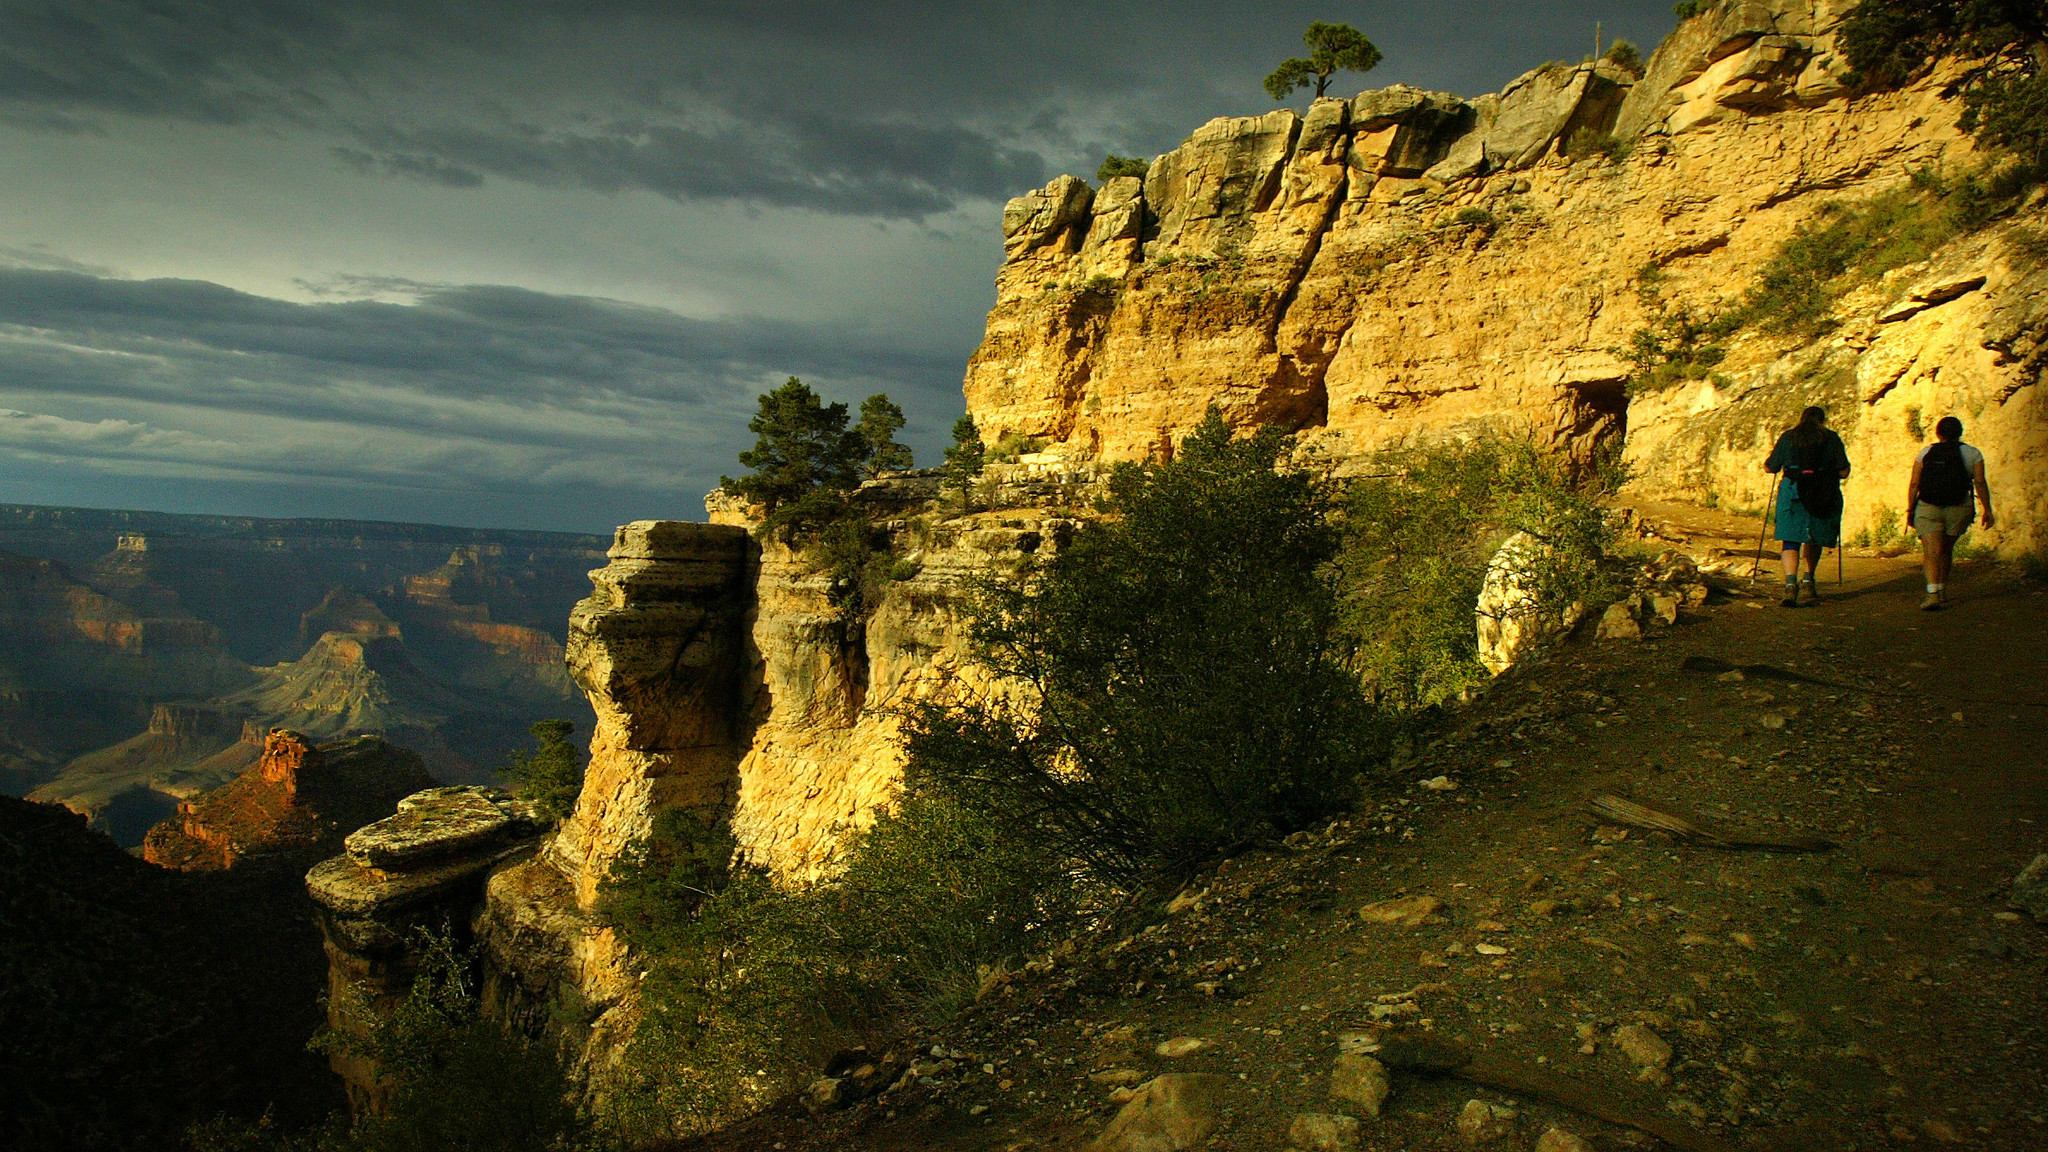 Hikers walk along the Bright Angel Trail in Arizona's Grand Canyon National Park.